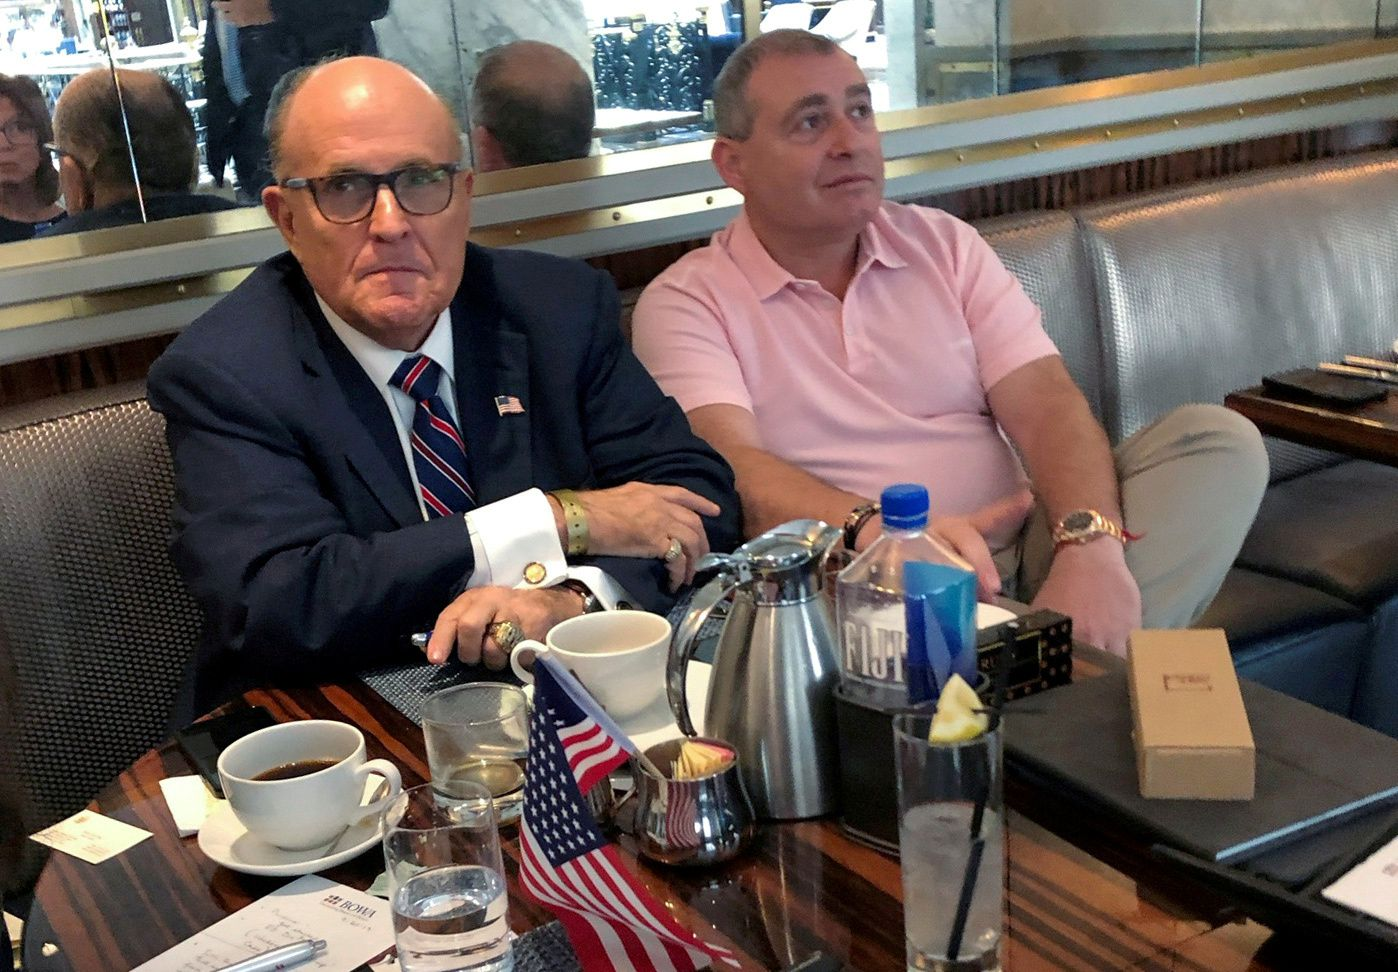 Trump lawyer Rudy Giuliani was paid $500,000 to consult on indicted associate's firm